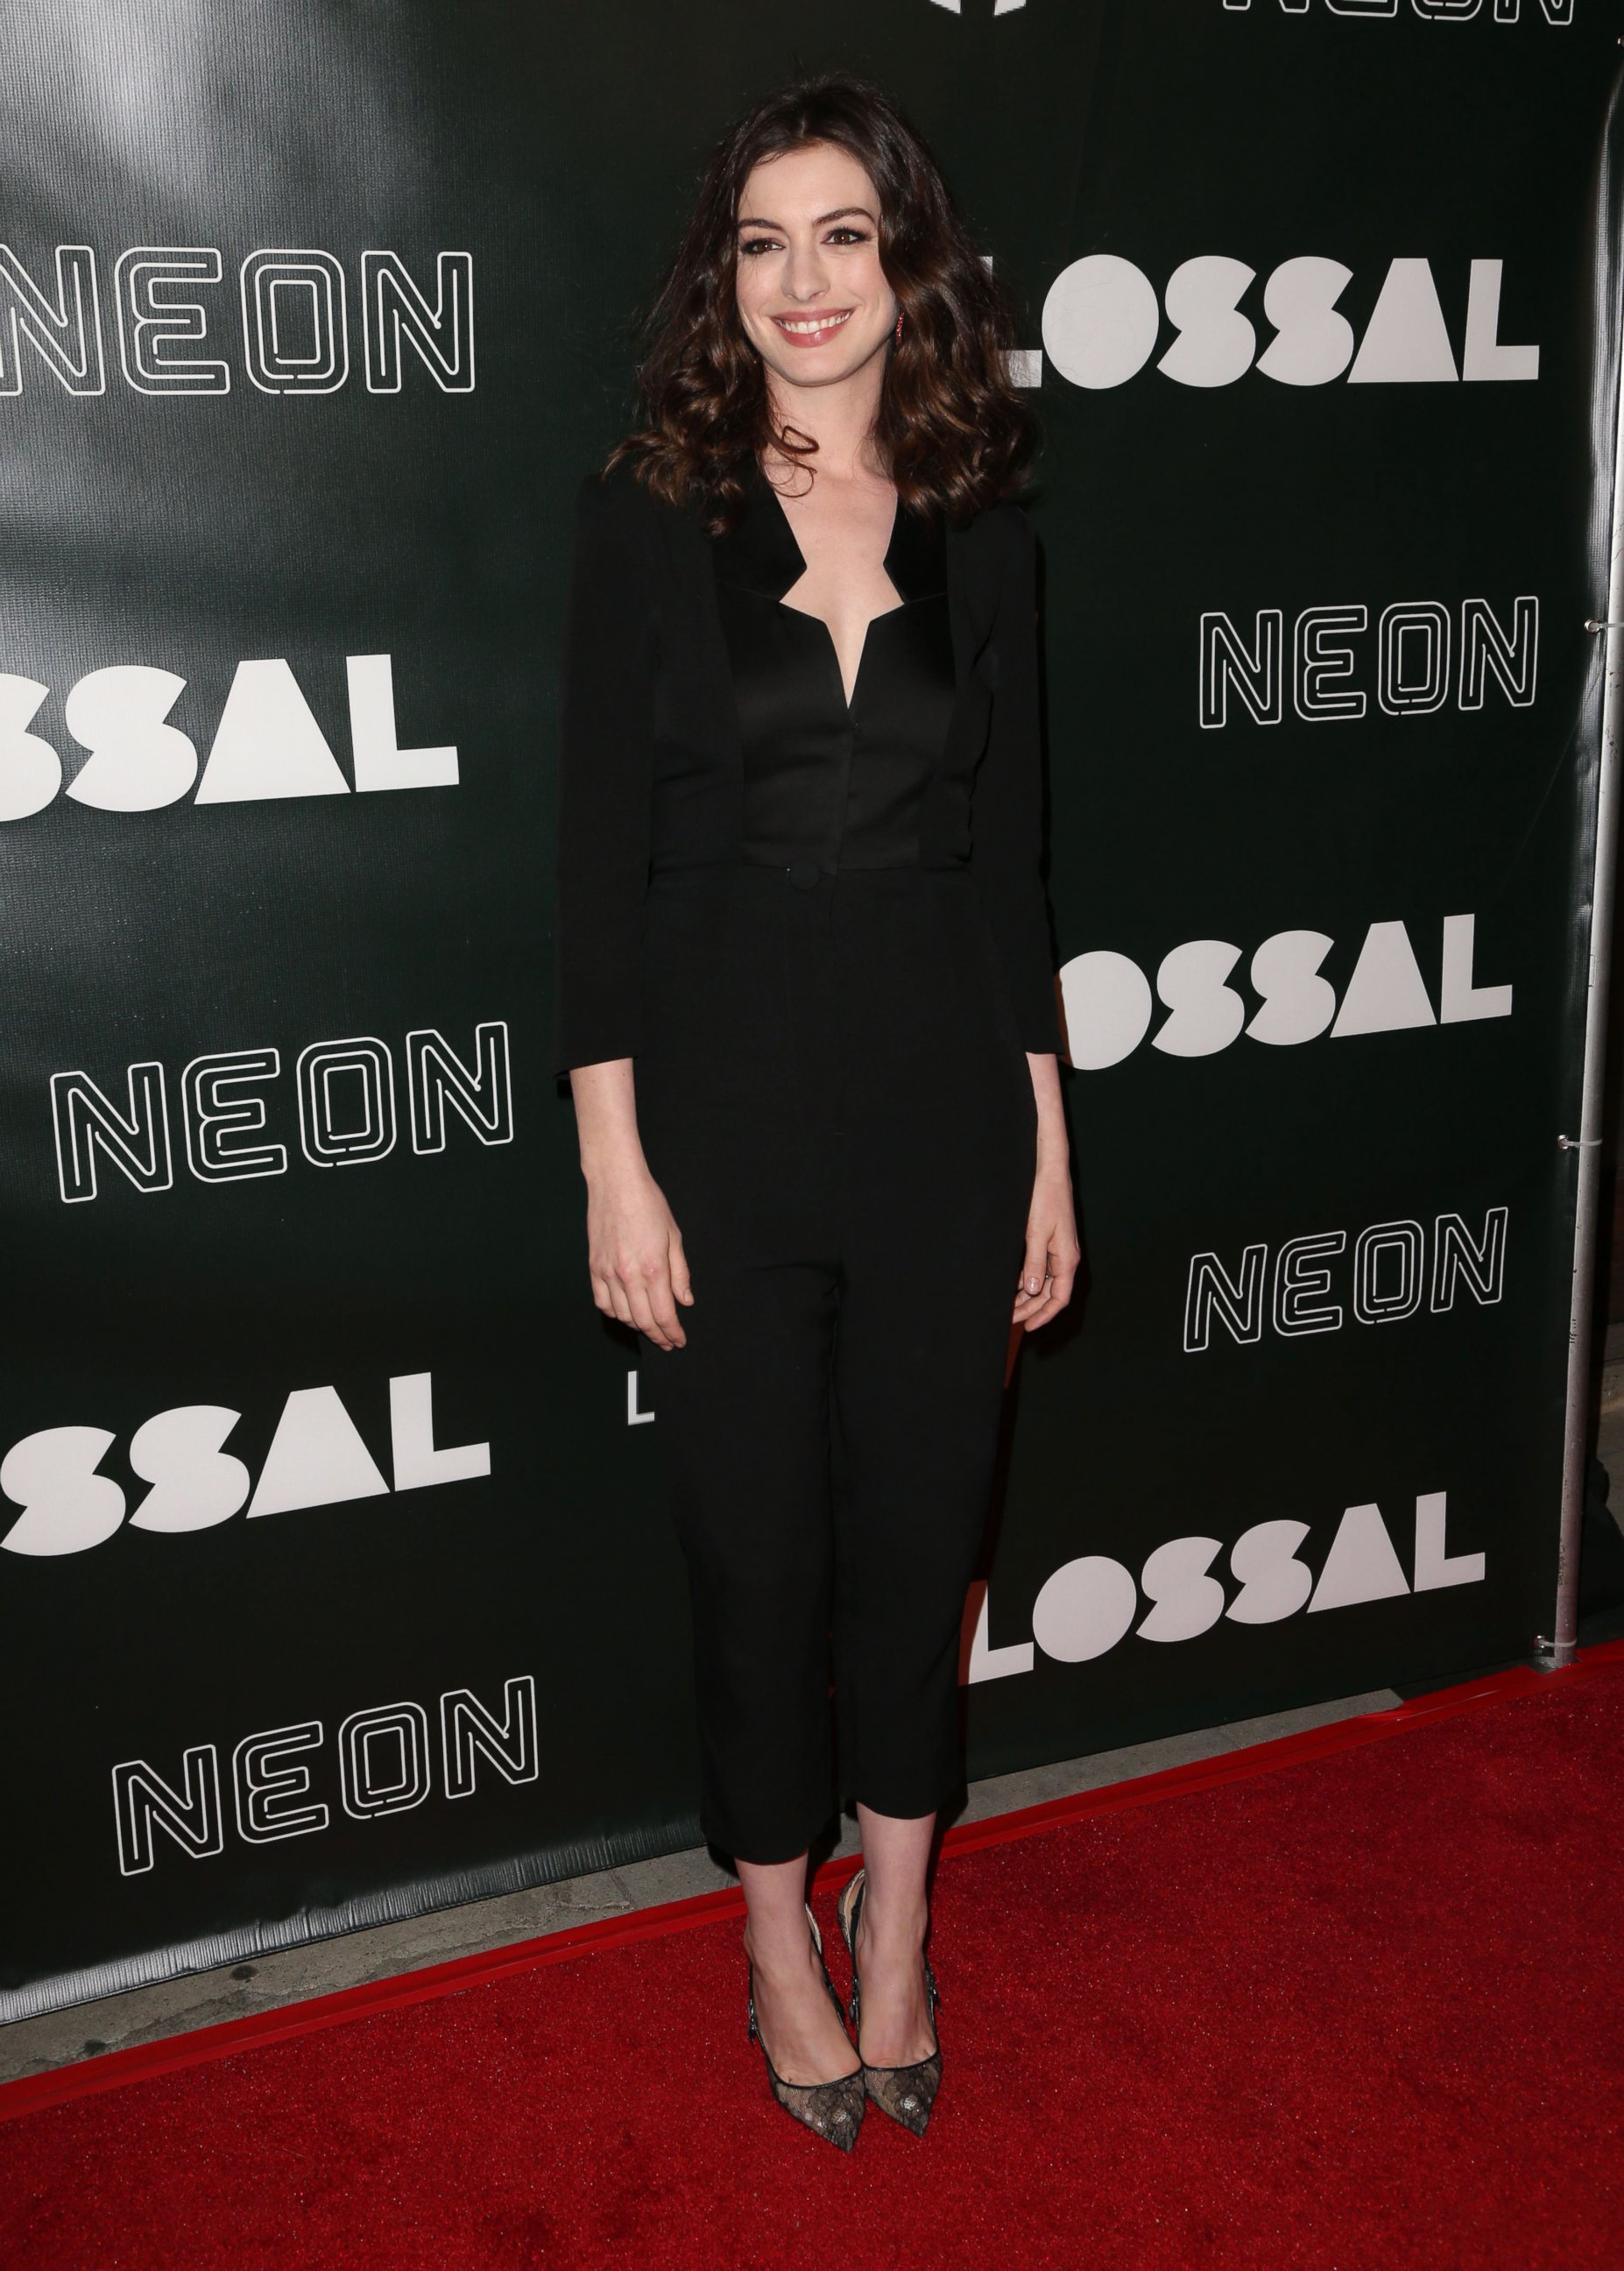 Im im images of anne hathaway - Photo Anne Hathaway Attends The Colossal Premiere Held At Vista Theatre In Los Angeles April 5 2017